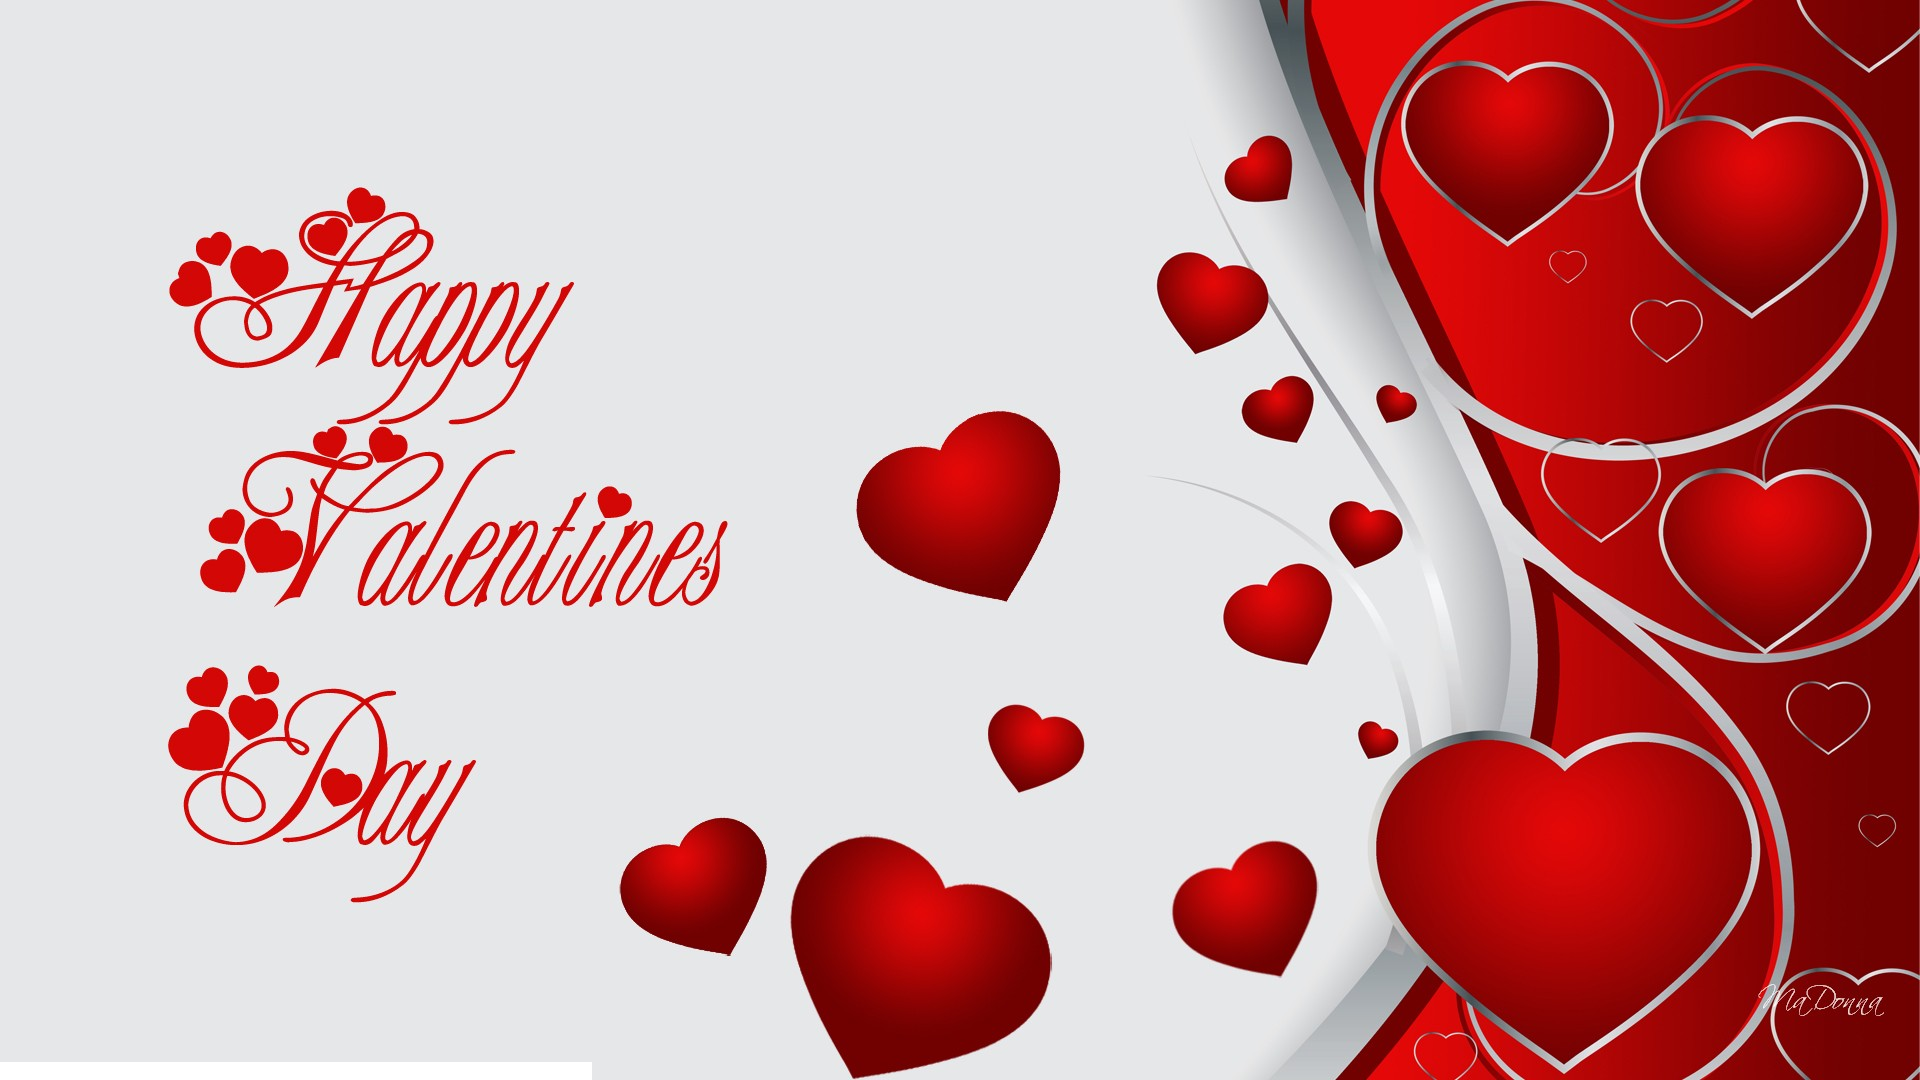 Happy Valentines Day Full HD Wallpaper And Background Image